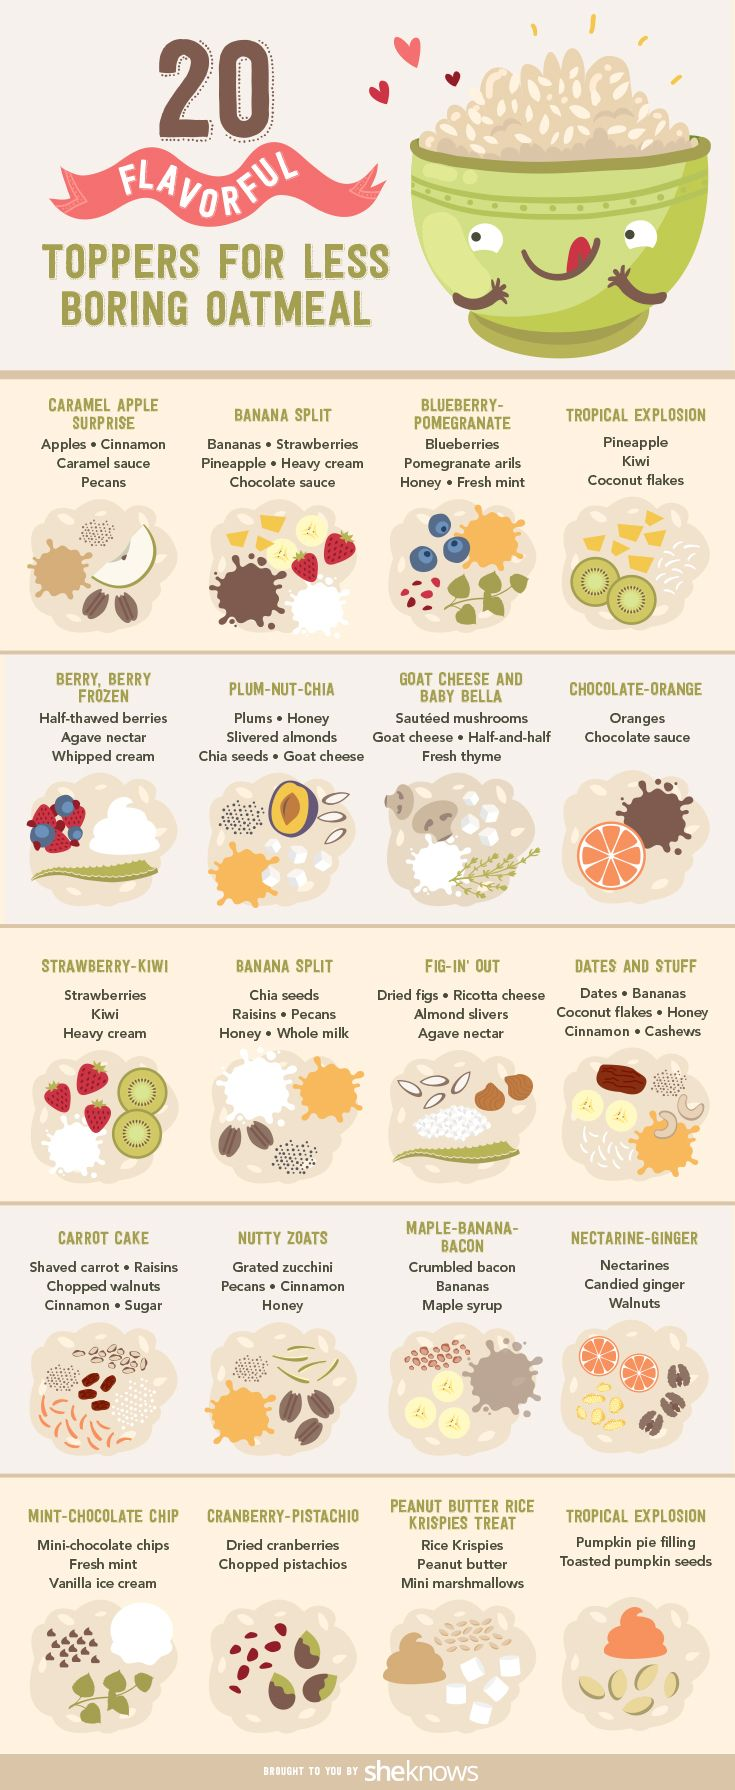 20 flavorful oatmeal toppings worth waking up for (INFOGRAPHIC)